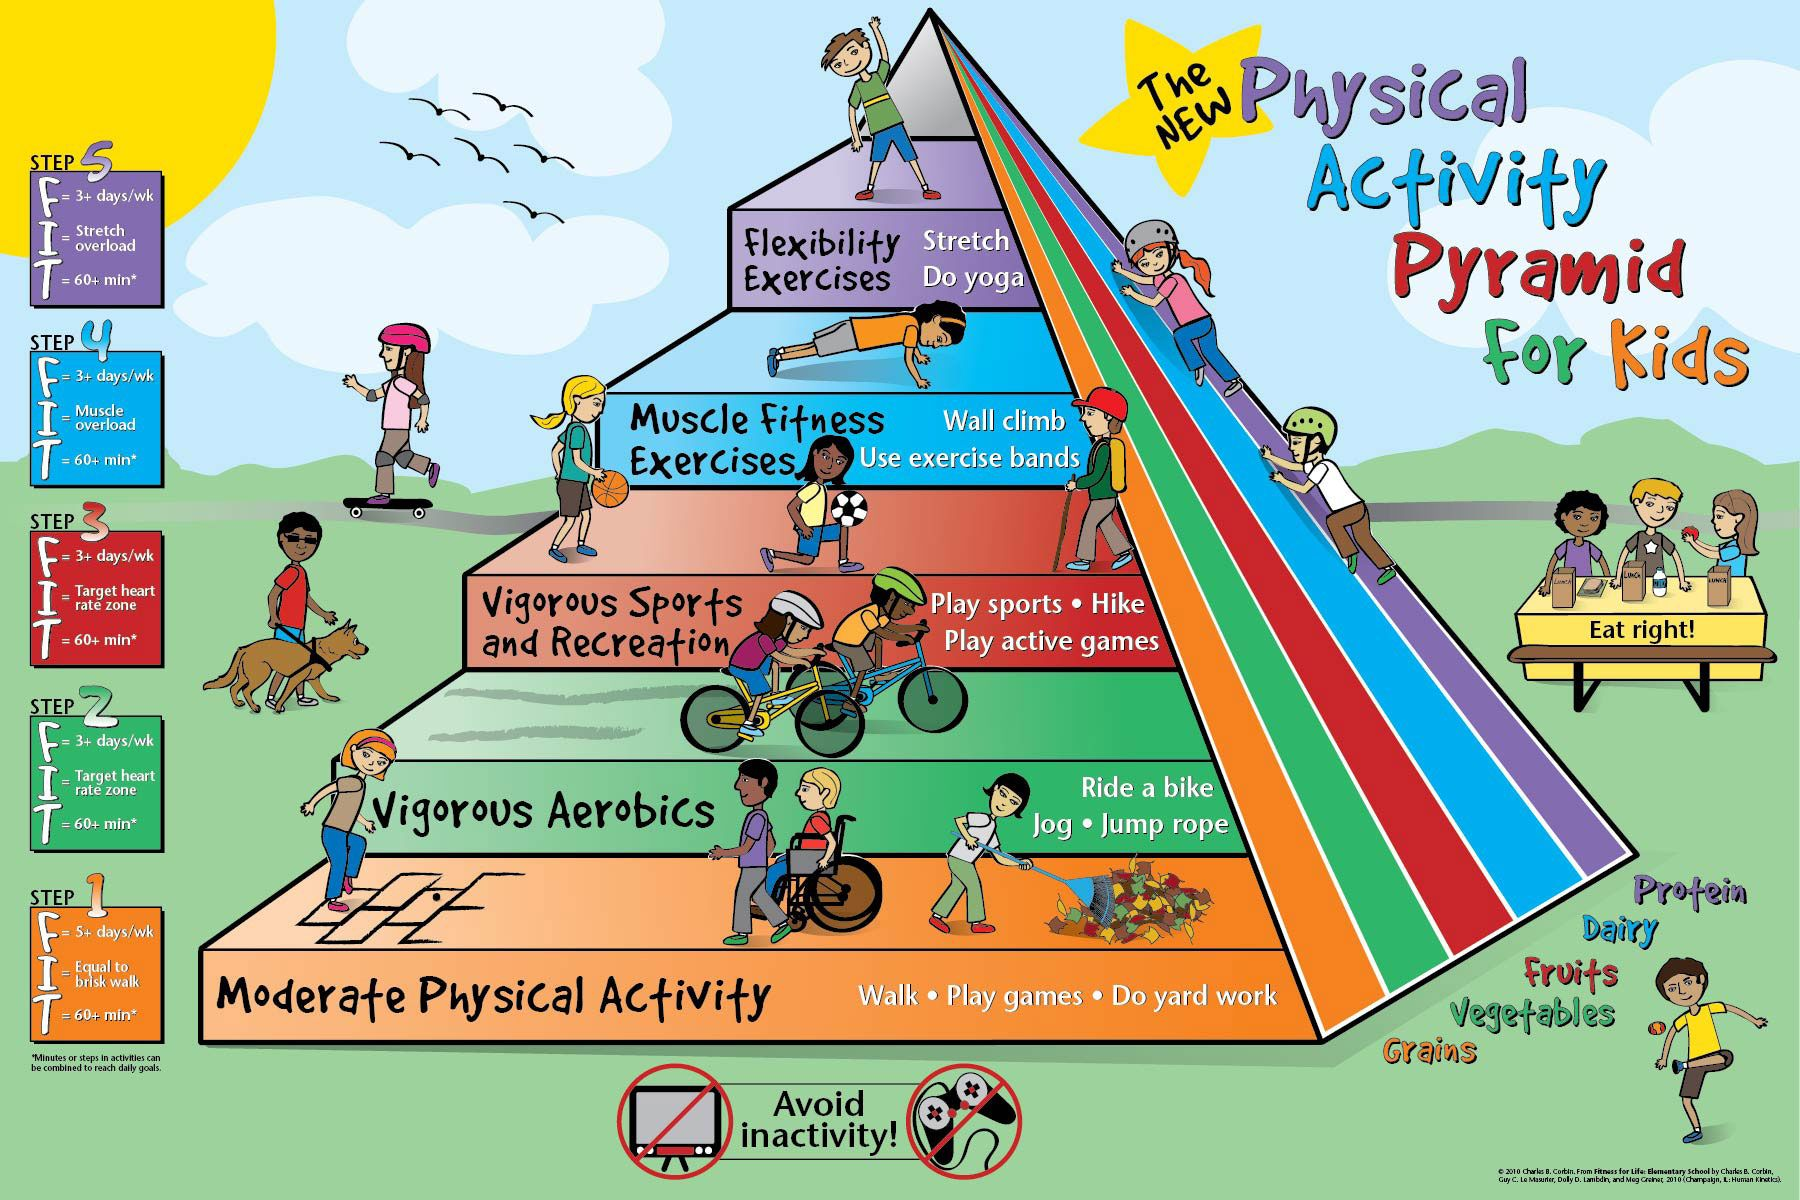 Physical Activity Pyramid for Kids http//www.foodpyramid